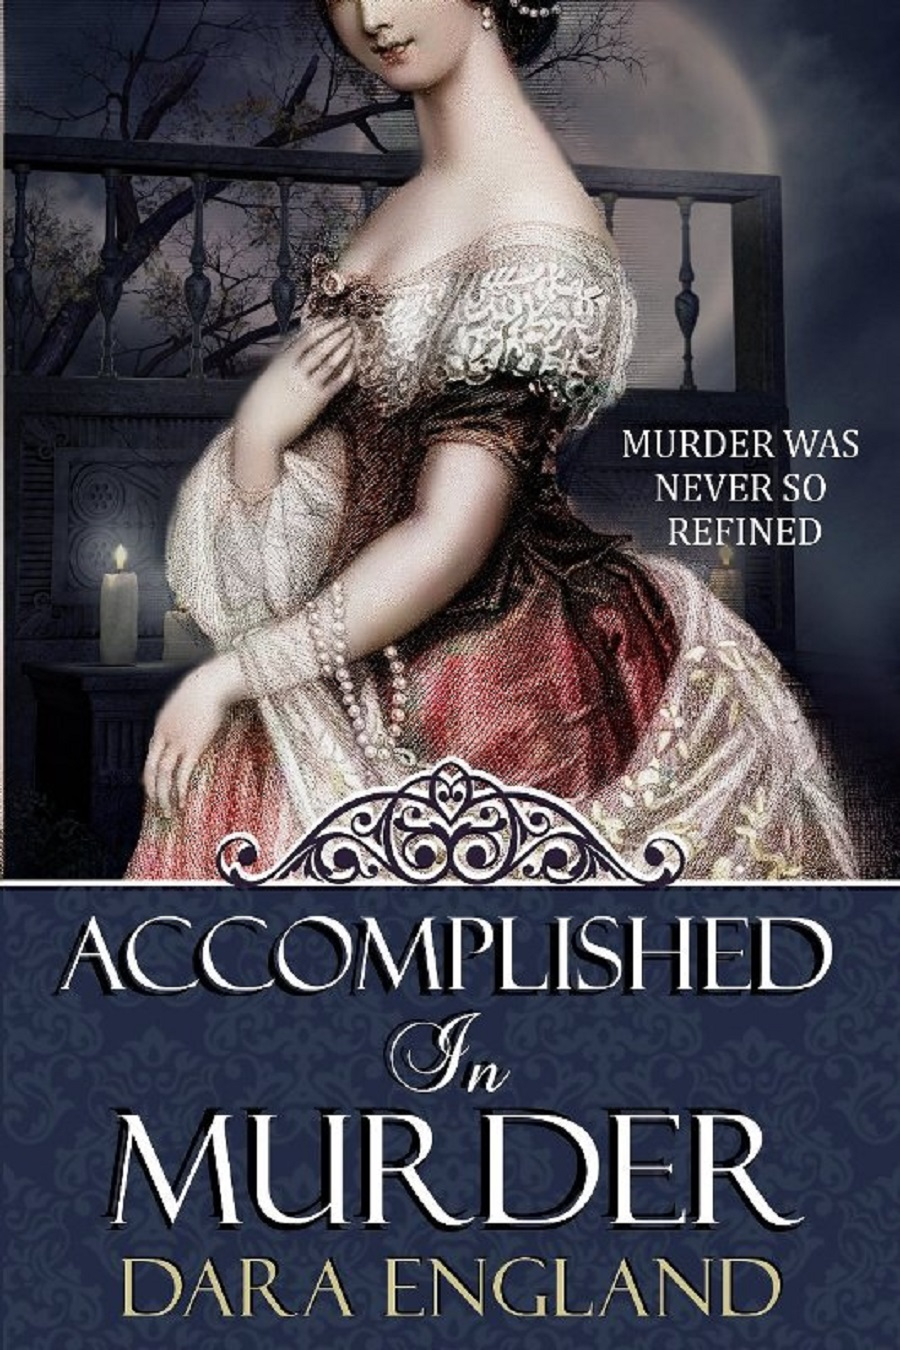 Accomplished Mystery series